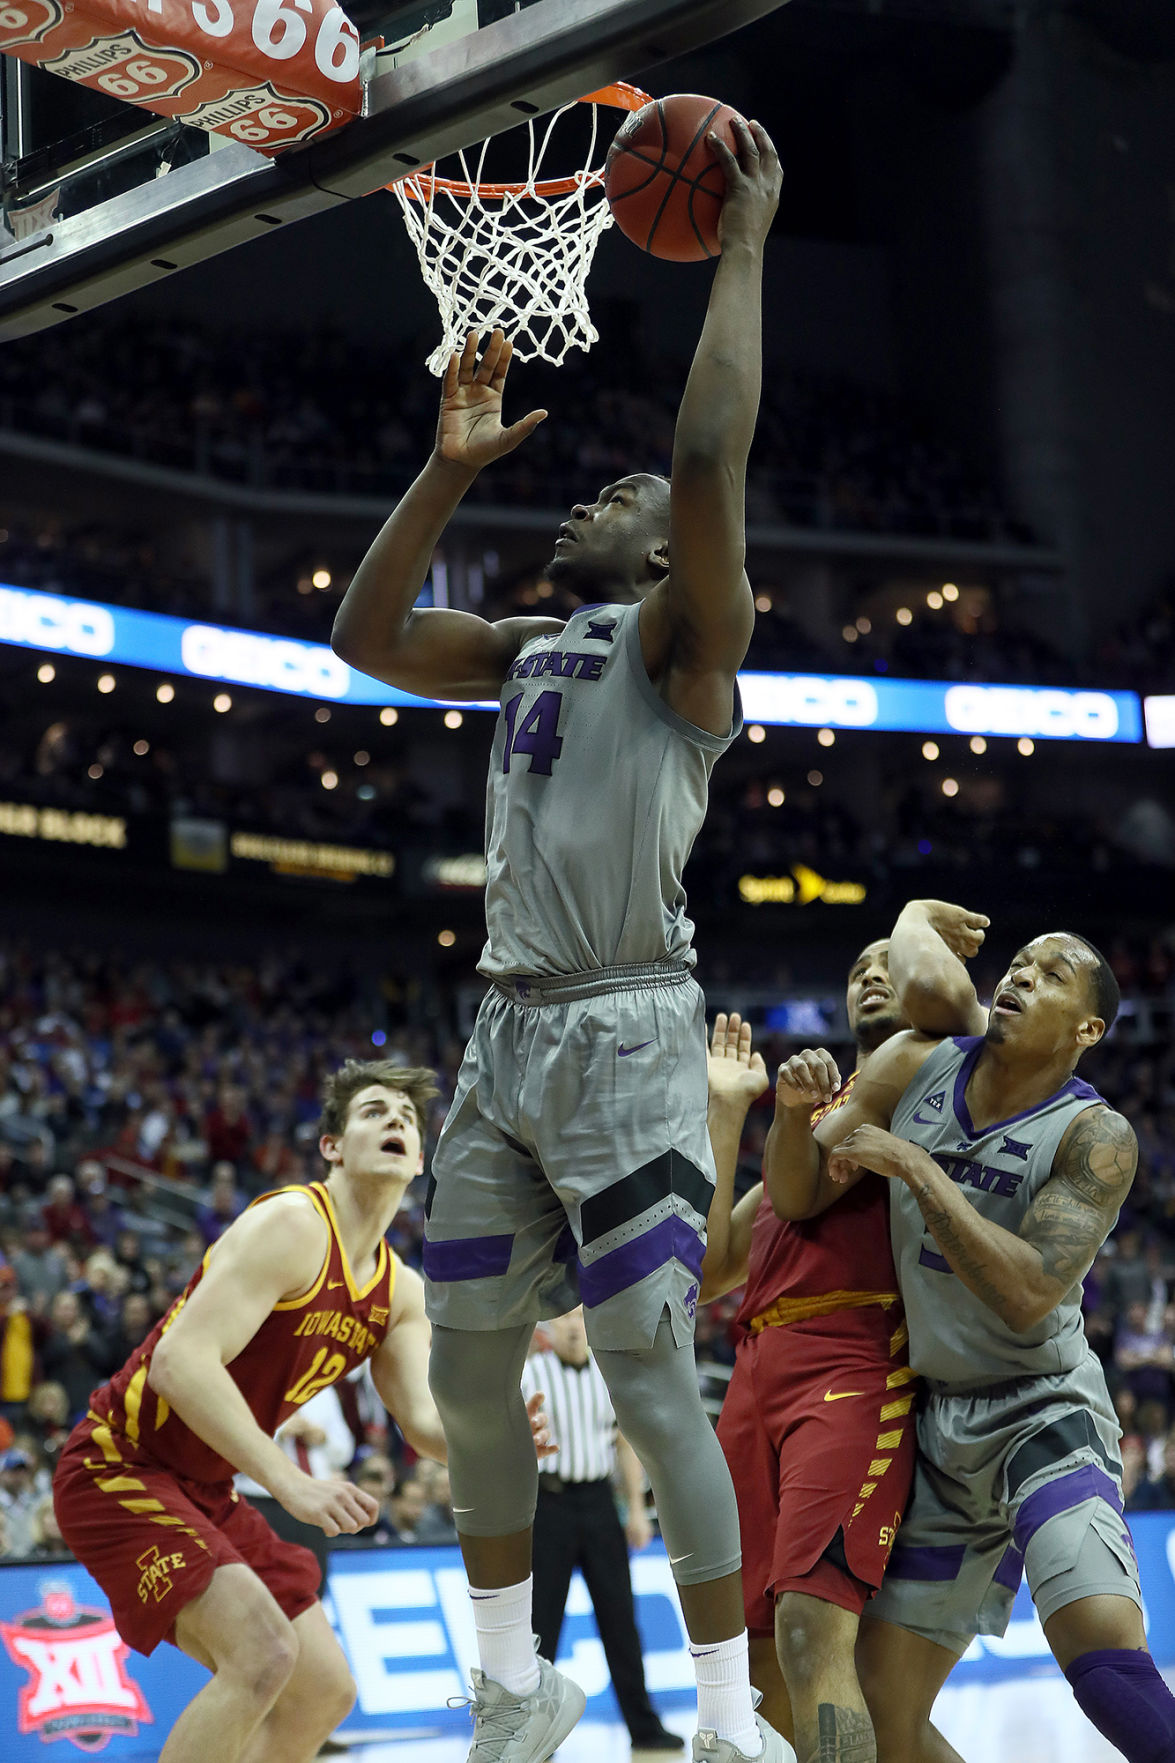 Kansas State's Levi Stockard III (34) lays up a shot against Iowa State during the semifinals of the Big 12 Tournament at Sprint Center in Kansas City, Mo., on March 15, 2019. Iowa State advanced, 63-59. **FOR USE WITH THIS STORY ONLY**